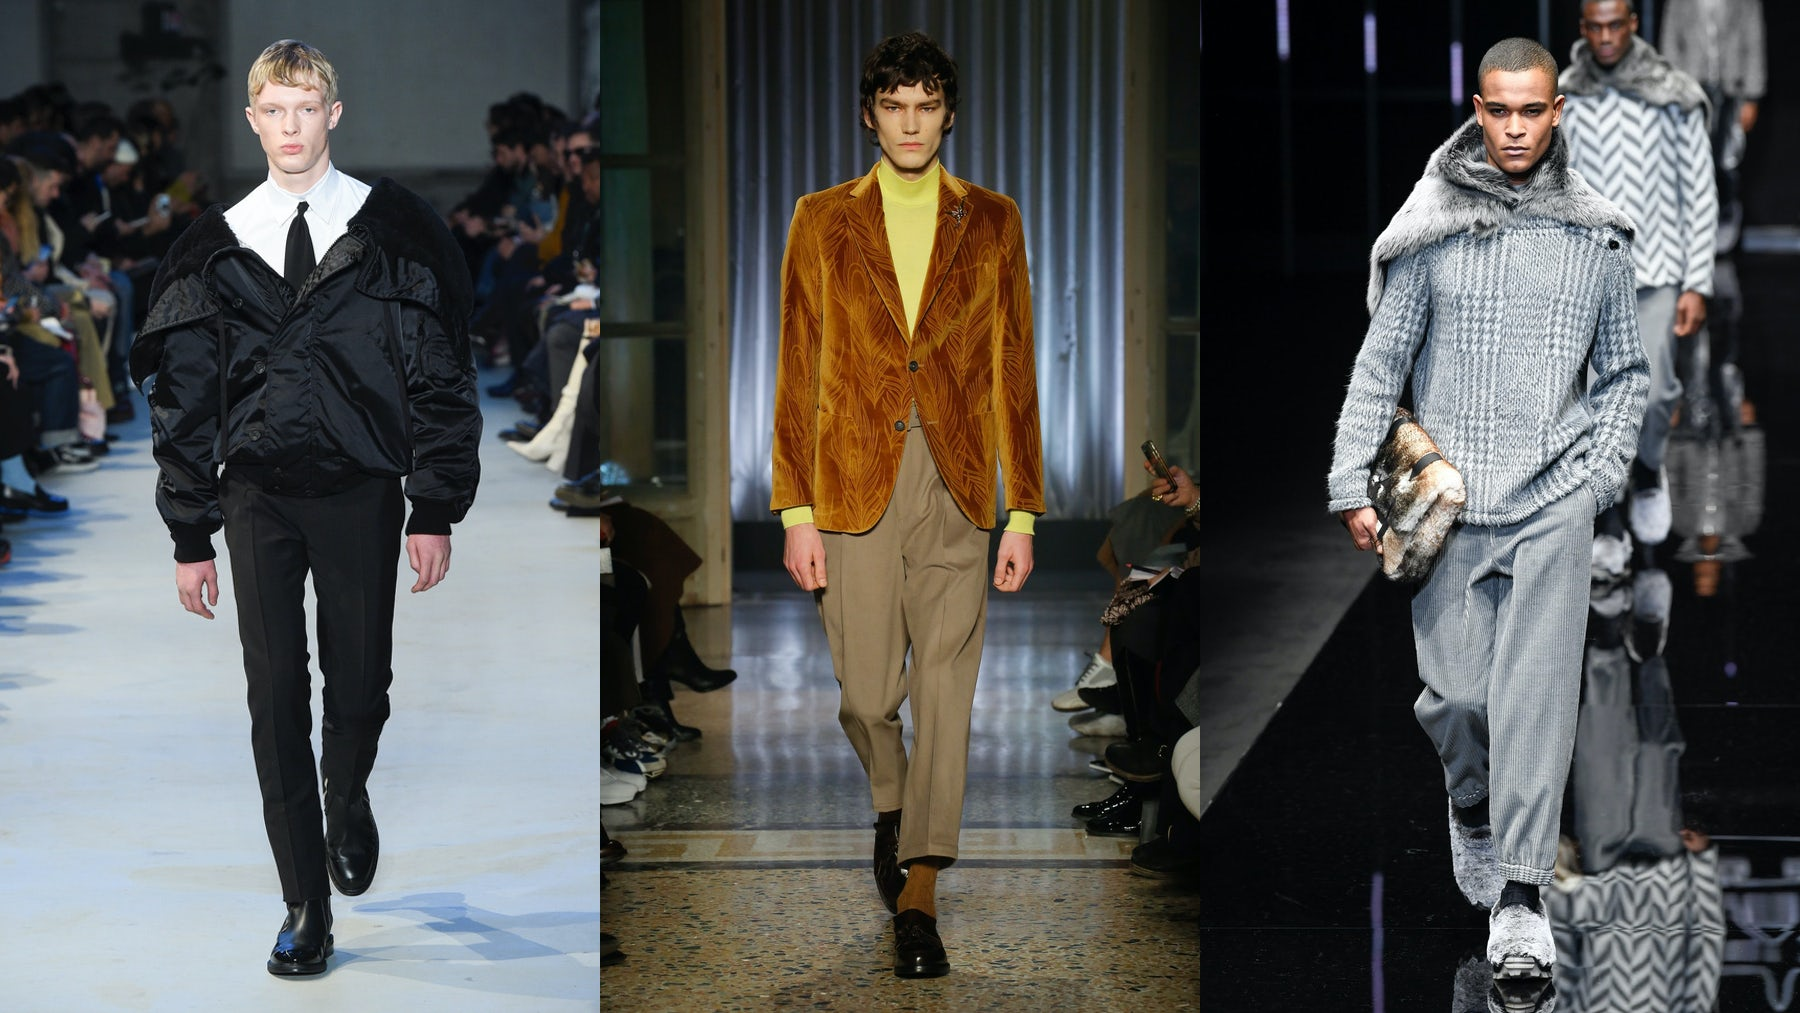 No. 21, Pal Zileri and Emporio Armani Autumn/Winter 2019 | Source: InDigital